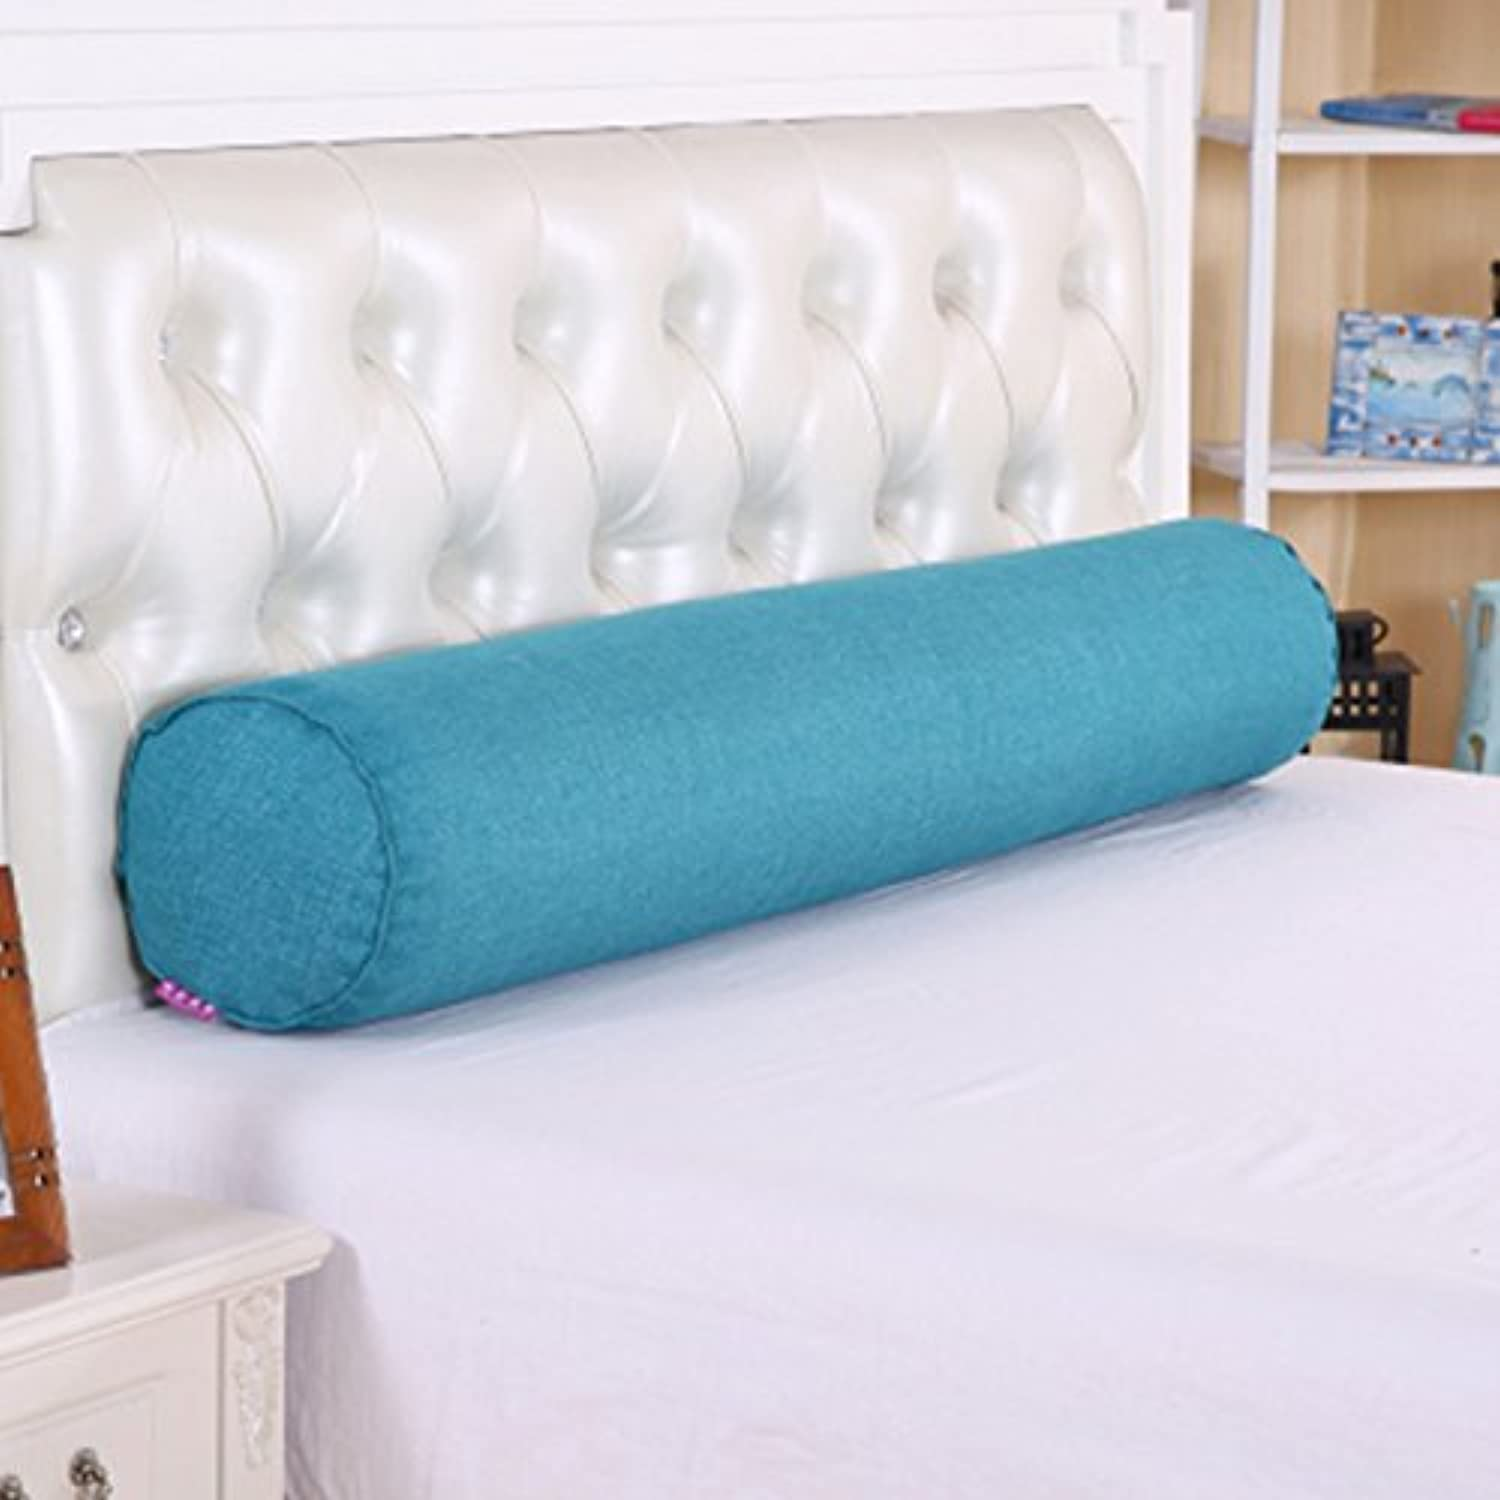 LAAN Cotton Long Pillow, Large Cylindrical Bed with Sleeping Cushion Pillow Detachable Boyfriend Candy Pillow